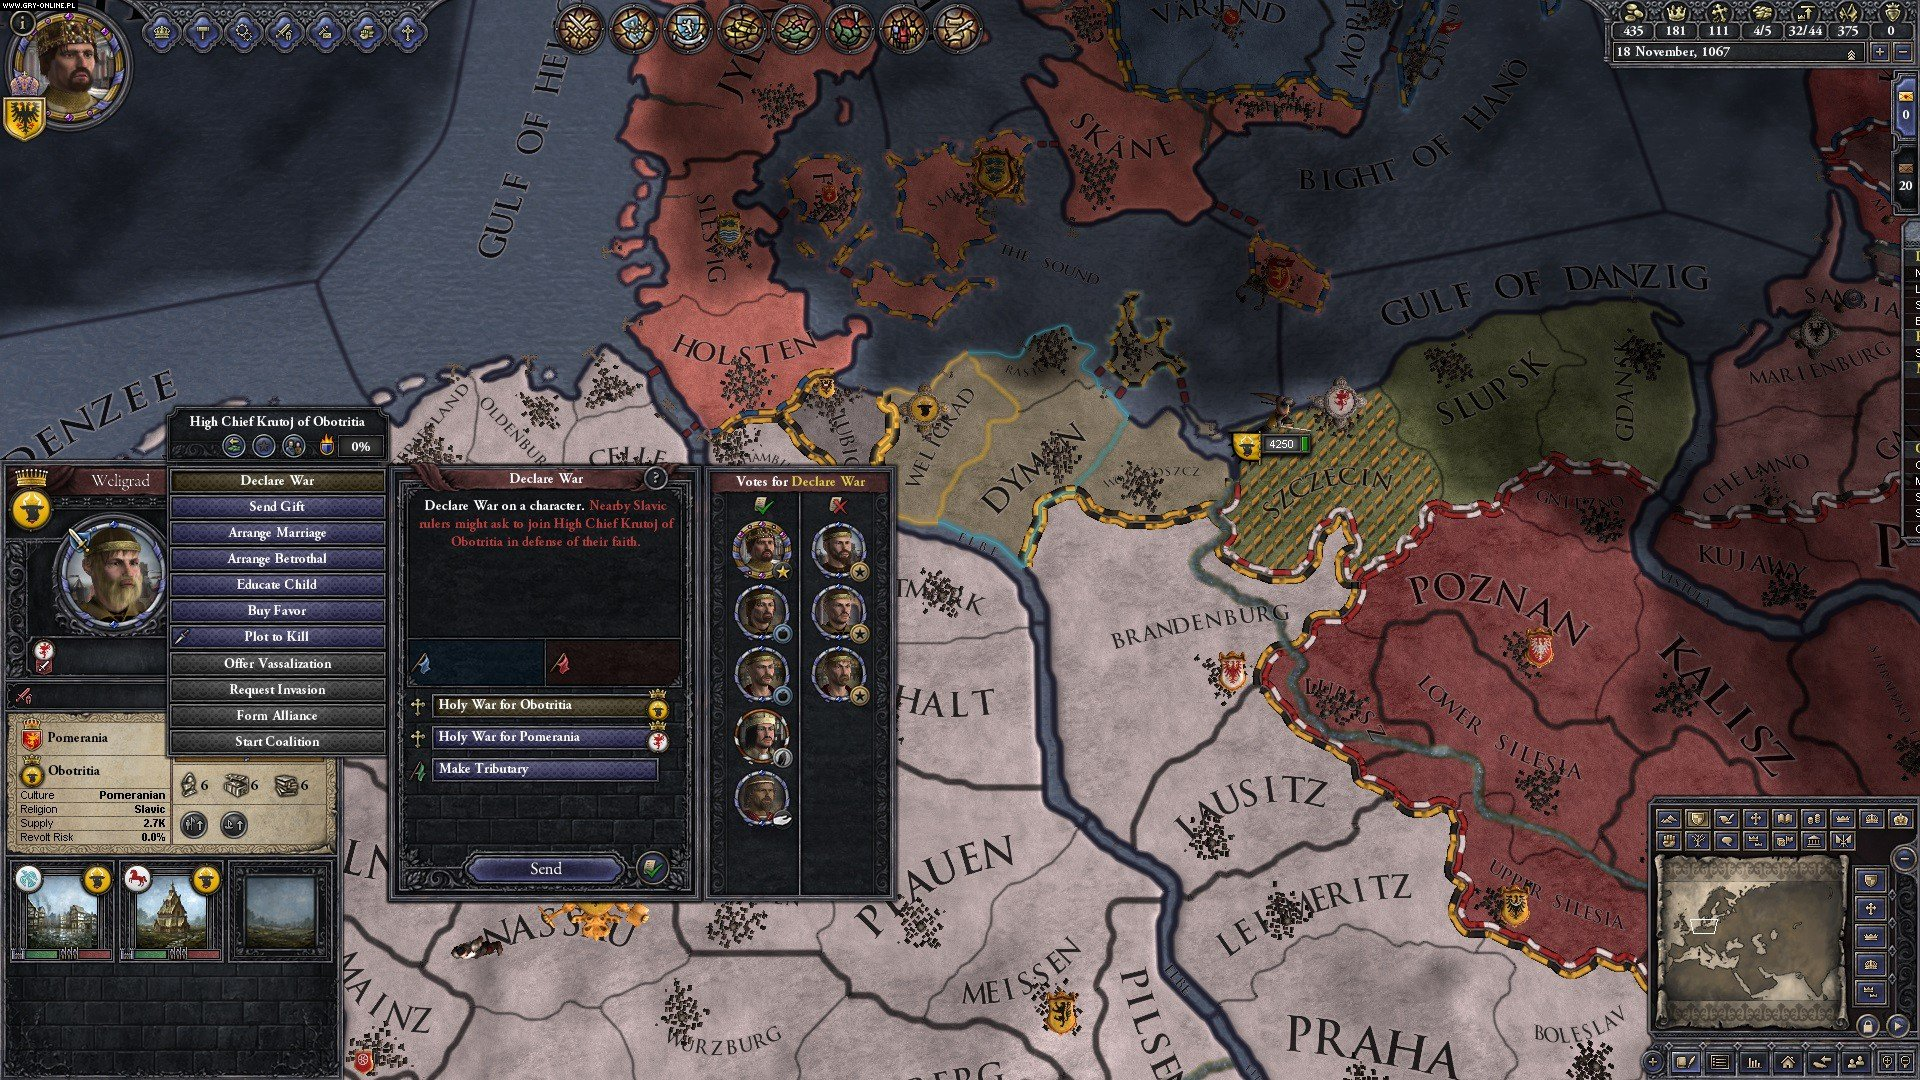 Crusader Kings II: Conclave PC Gry Screen 2/5, Paradox Development Studio, Paradox Interactive